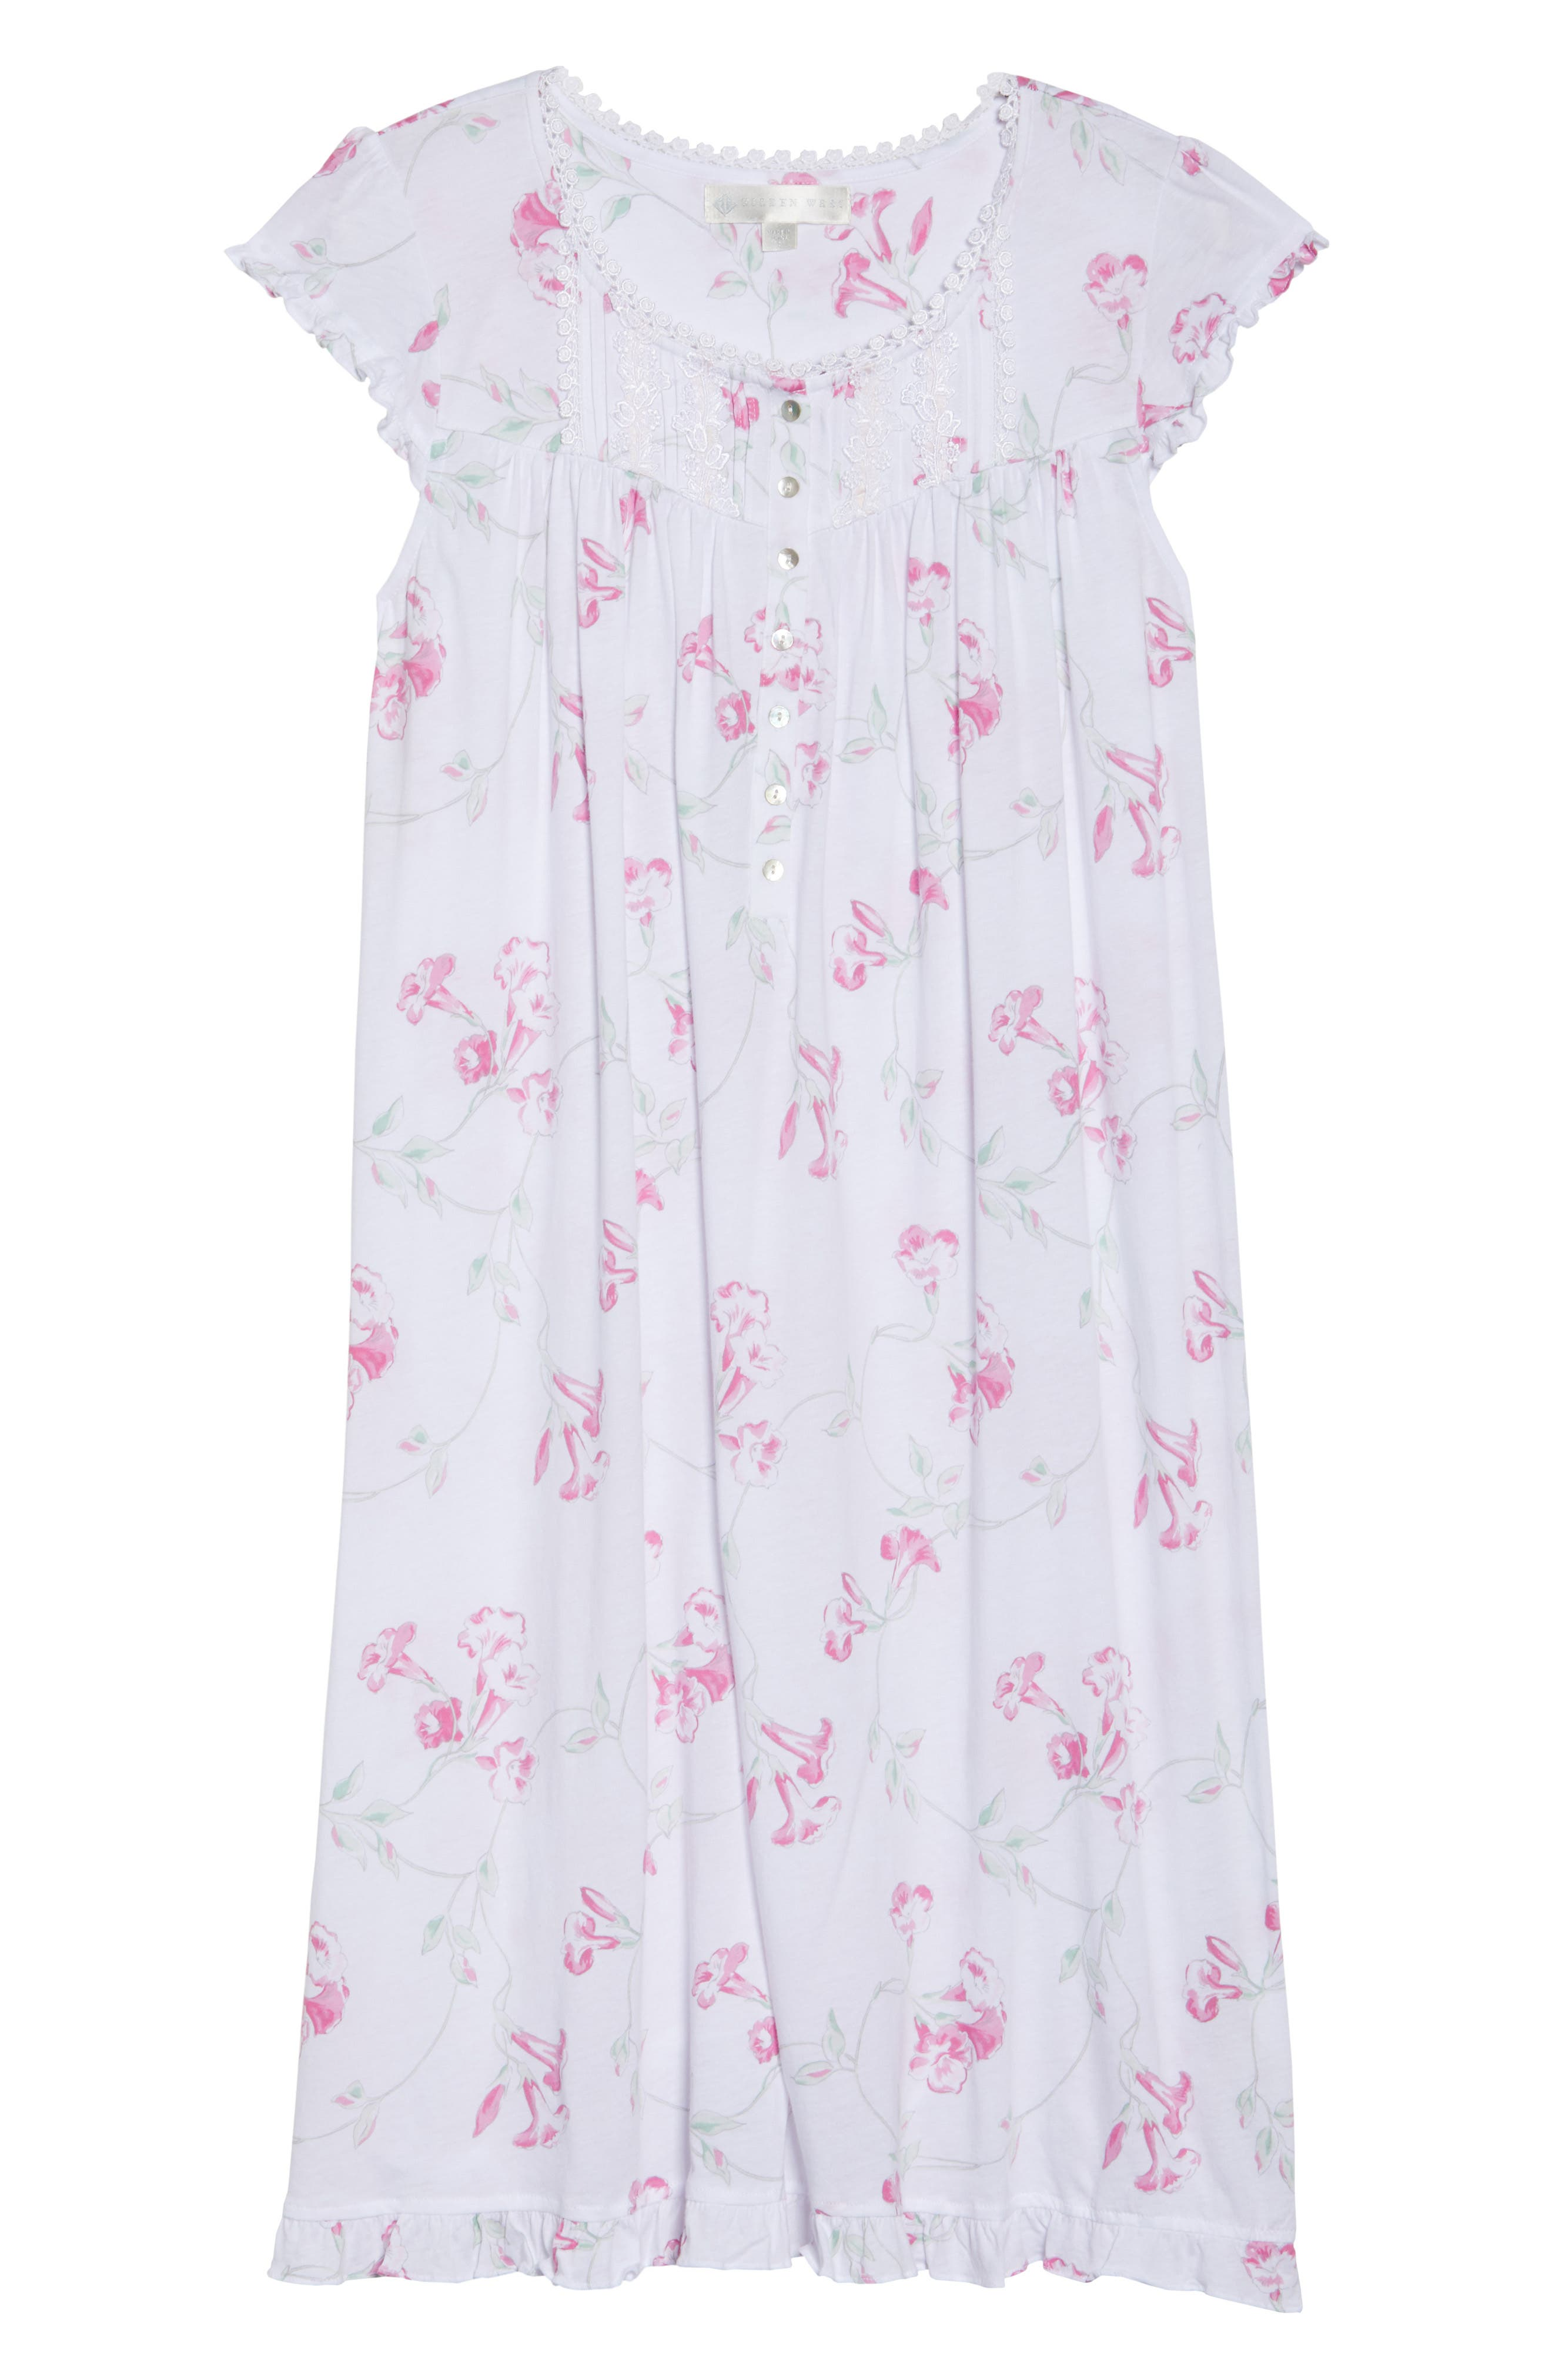 Floral Print Nightgown,                             Alternate thumbnail 6, color,